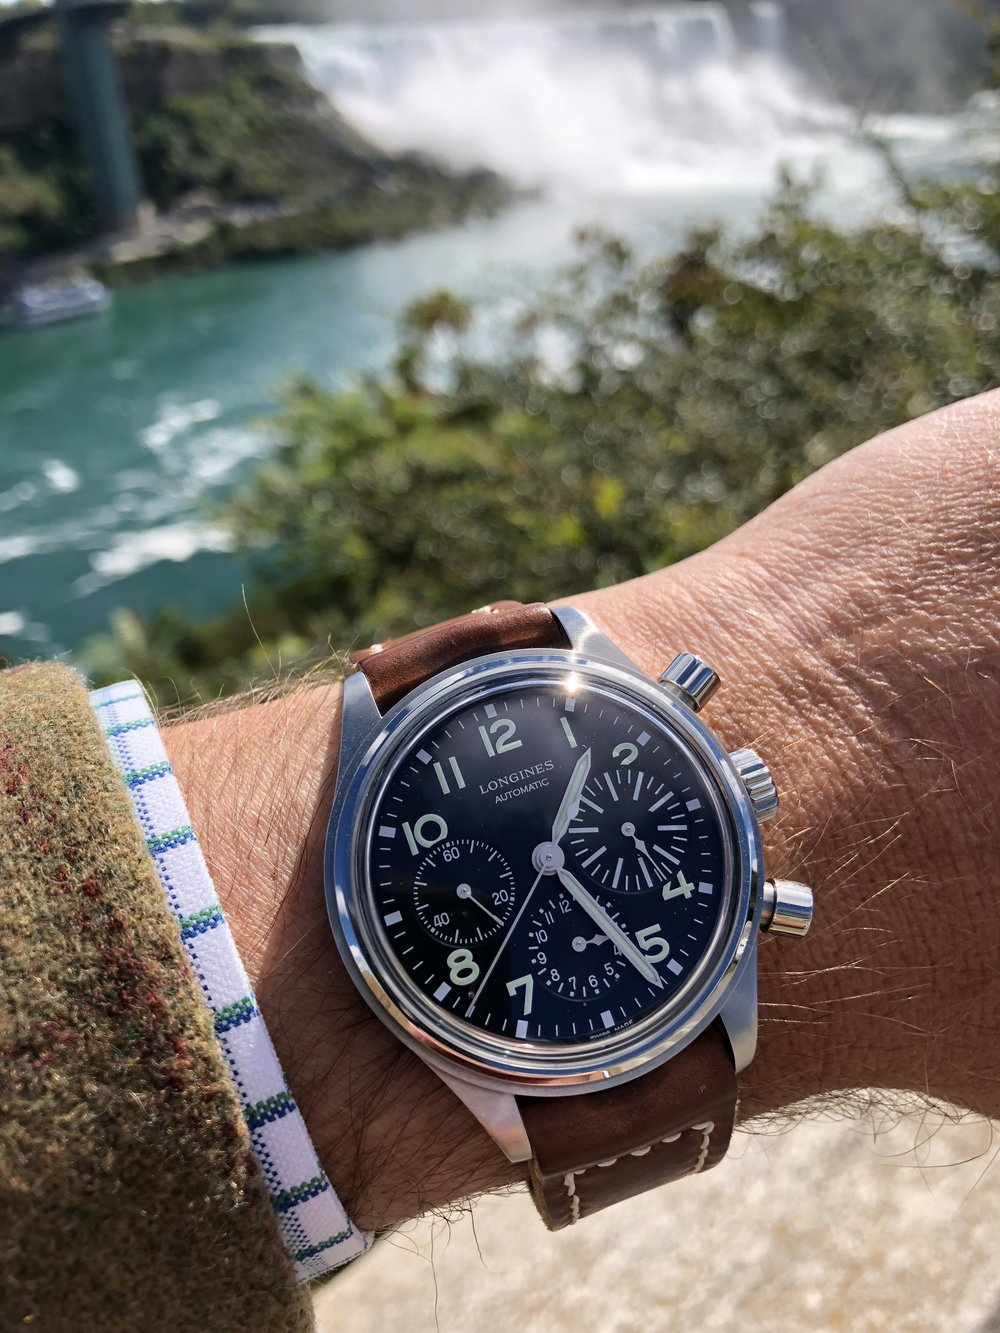 As cool as the Longines BigEye is, it pales in comparison to the experience of the Niagara Falls.